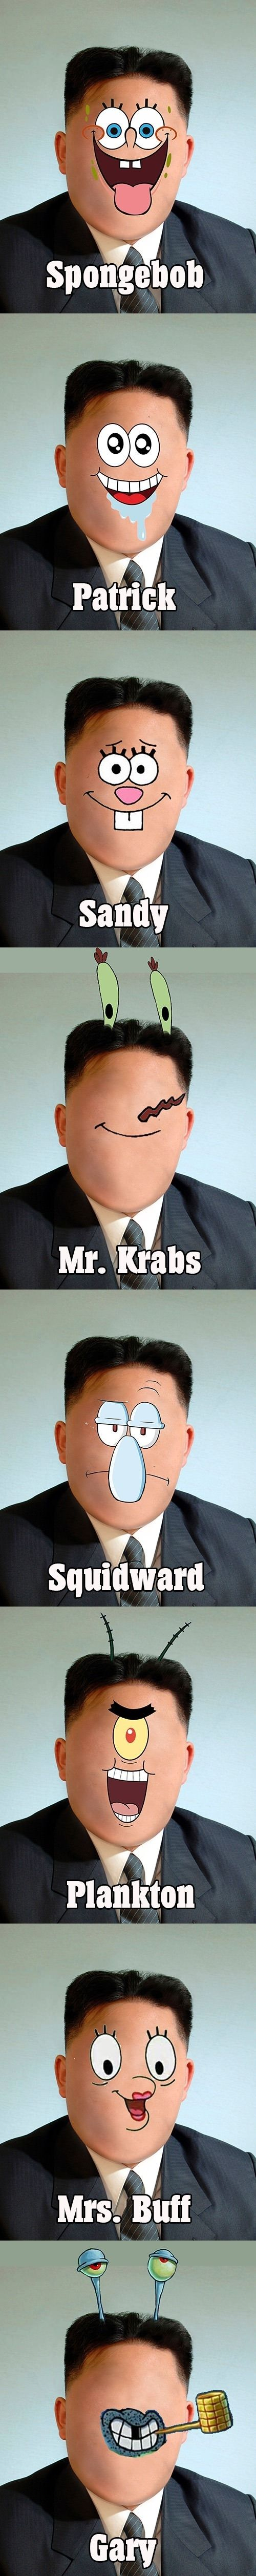 Kim in spongebob - funny pictures - funny photos - funny images - funny pics - funny quotes - #lol #humor #funny